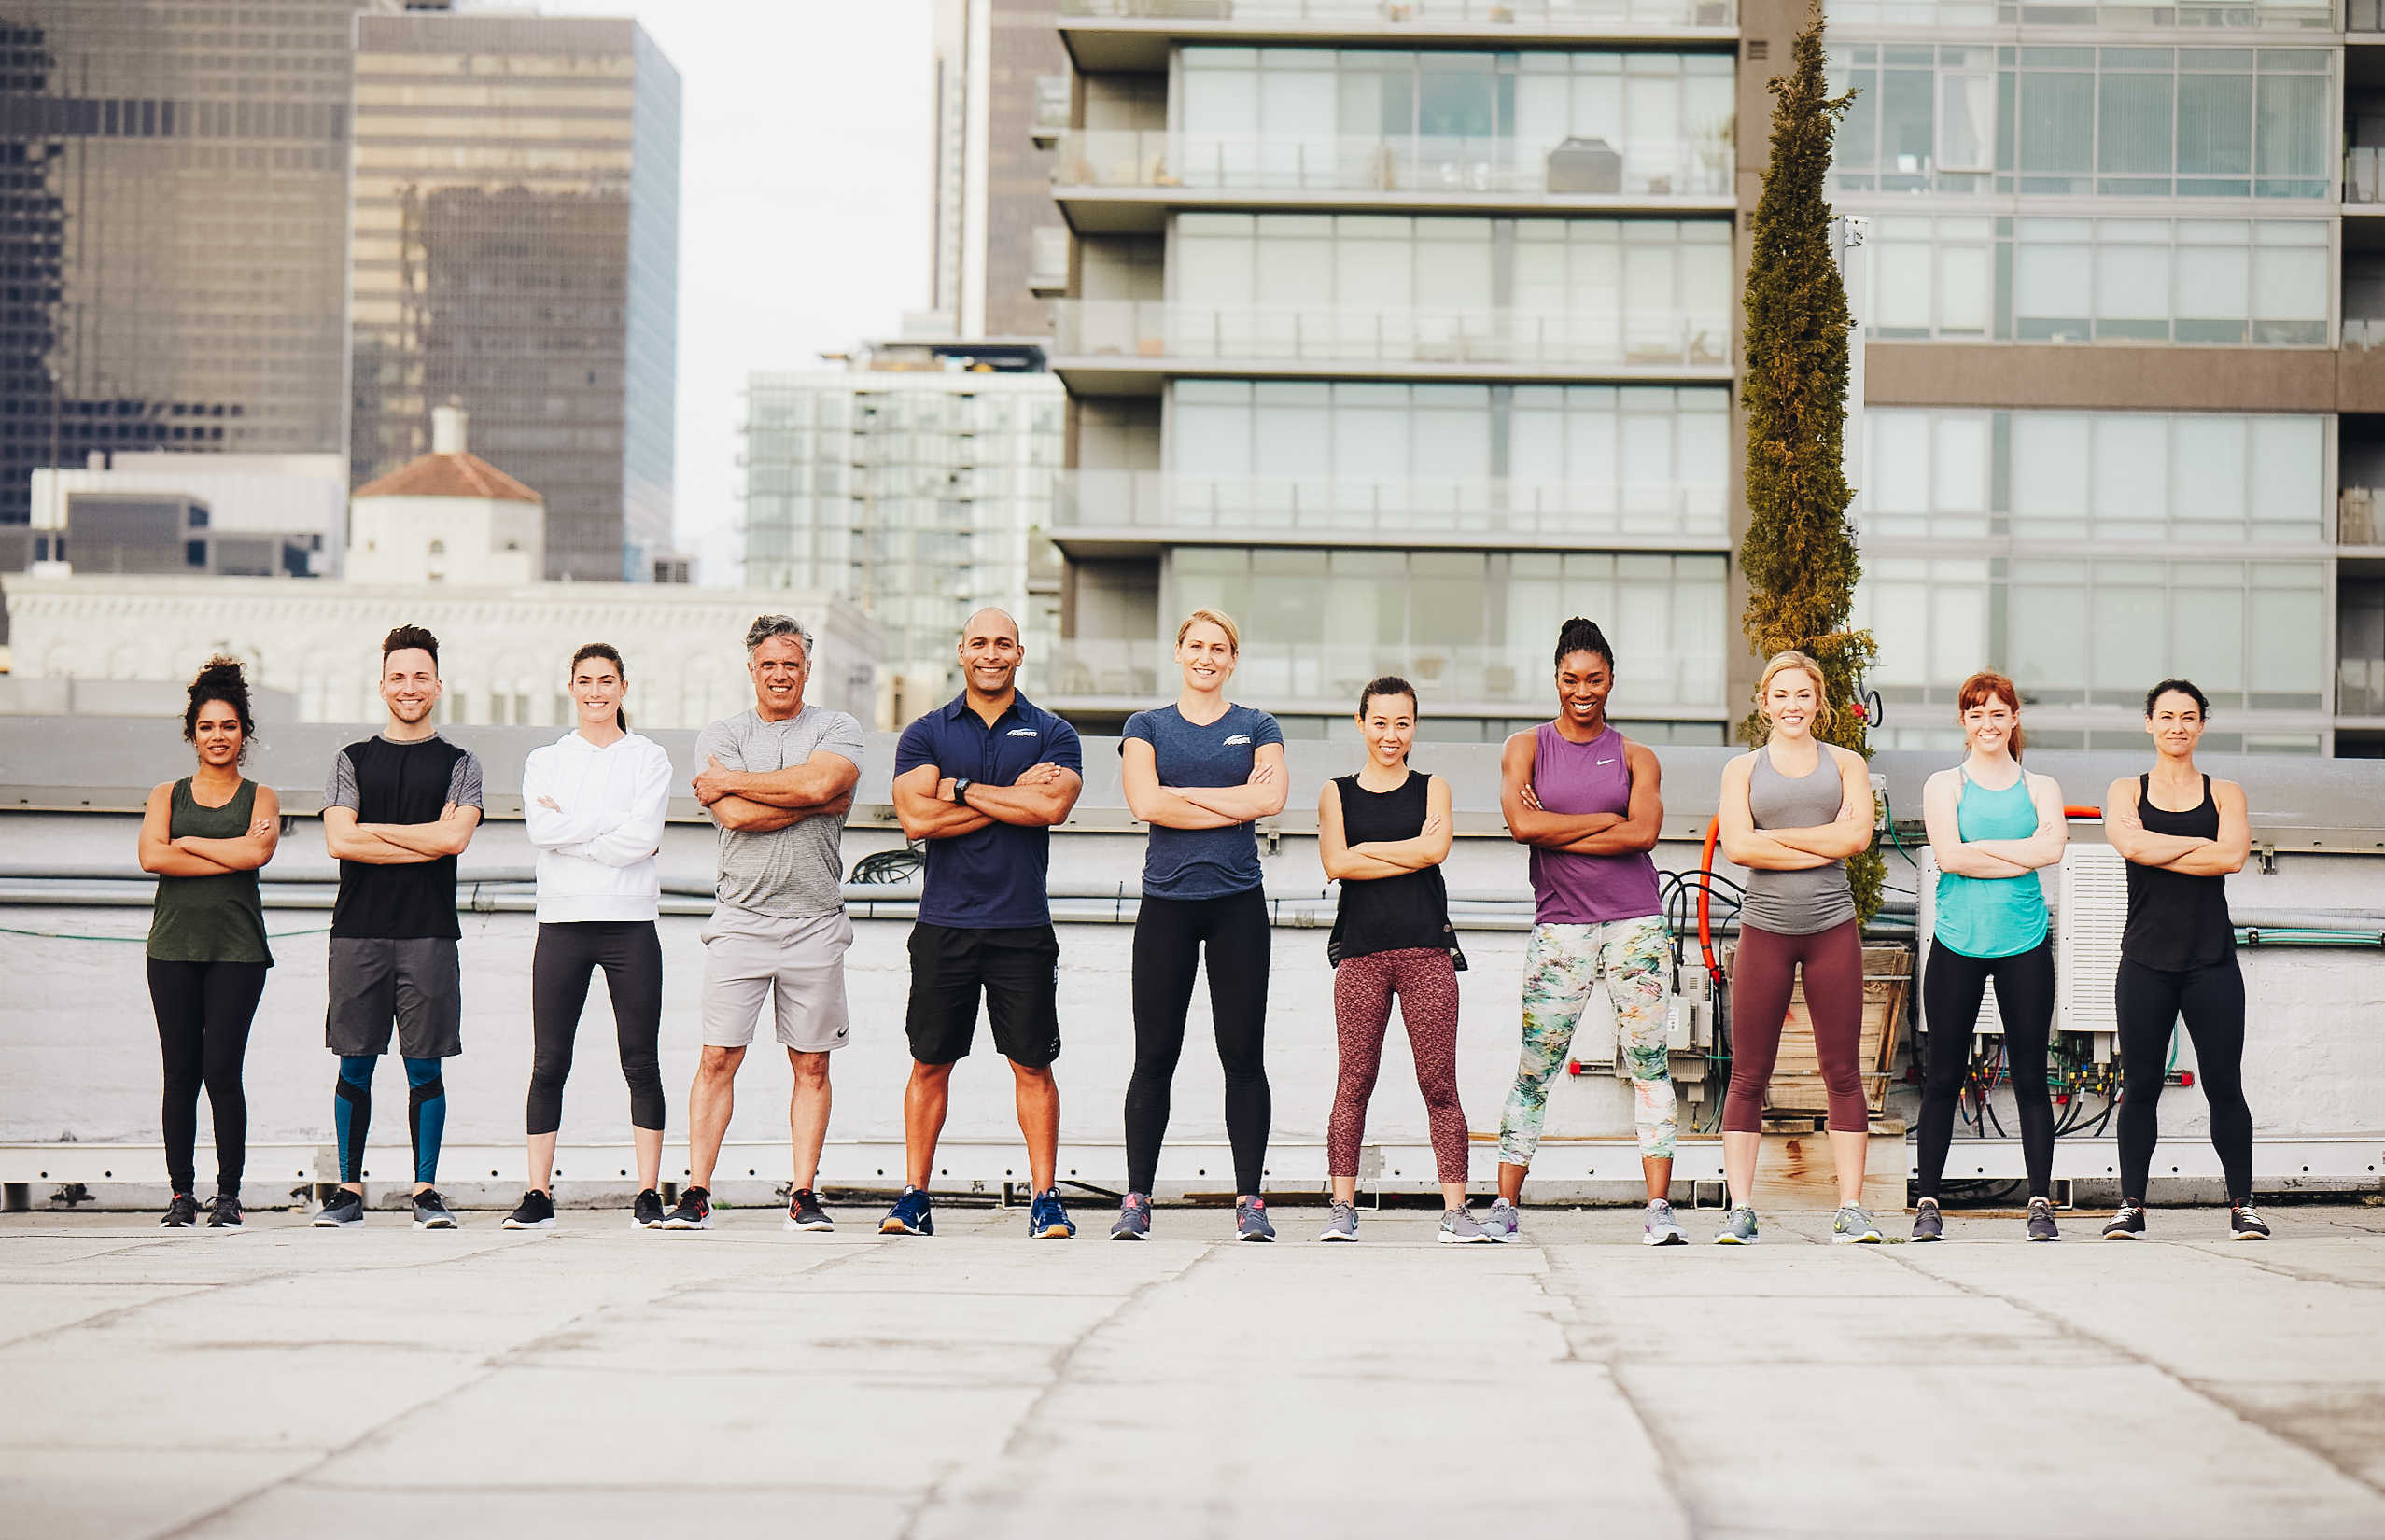 c55ddc0a510a1 The Power Of Group Fitness: Why Group Classes Are One Of The Best Ways To  Build A Love For Exercise